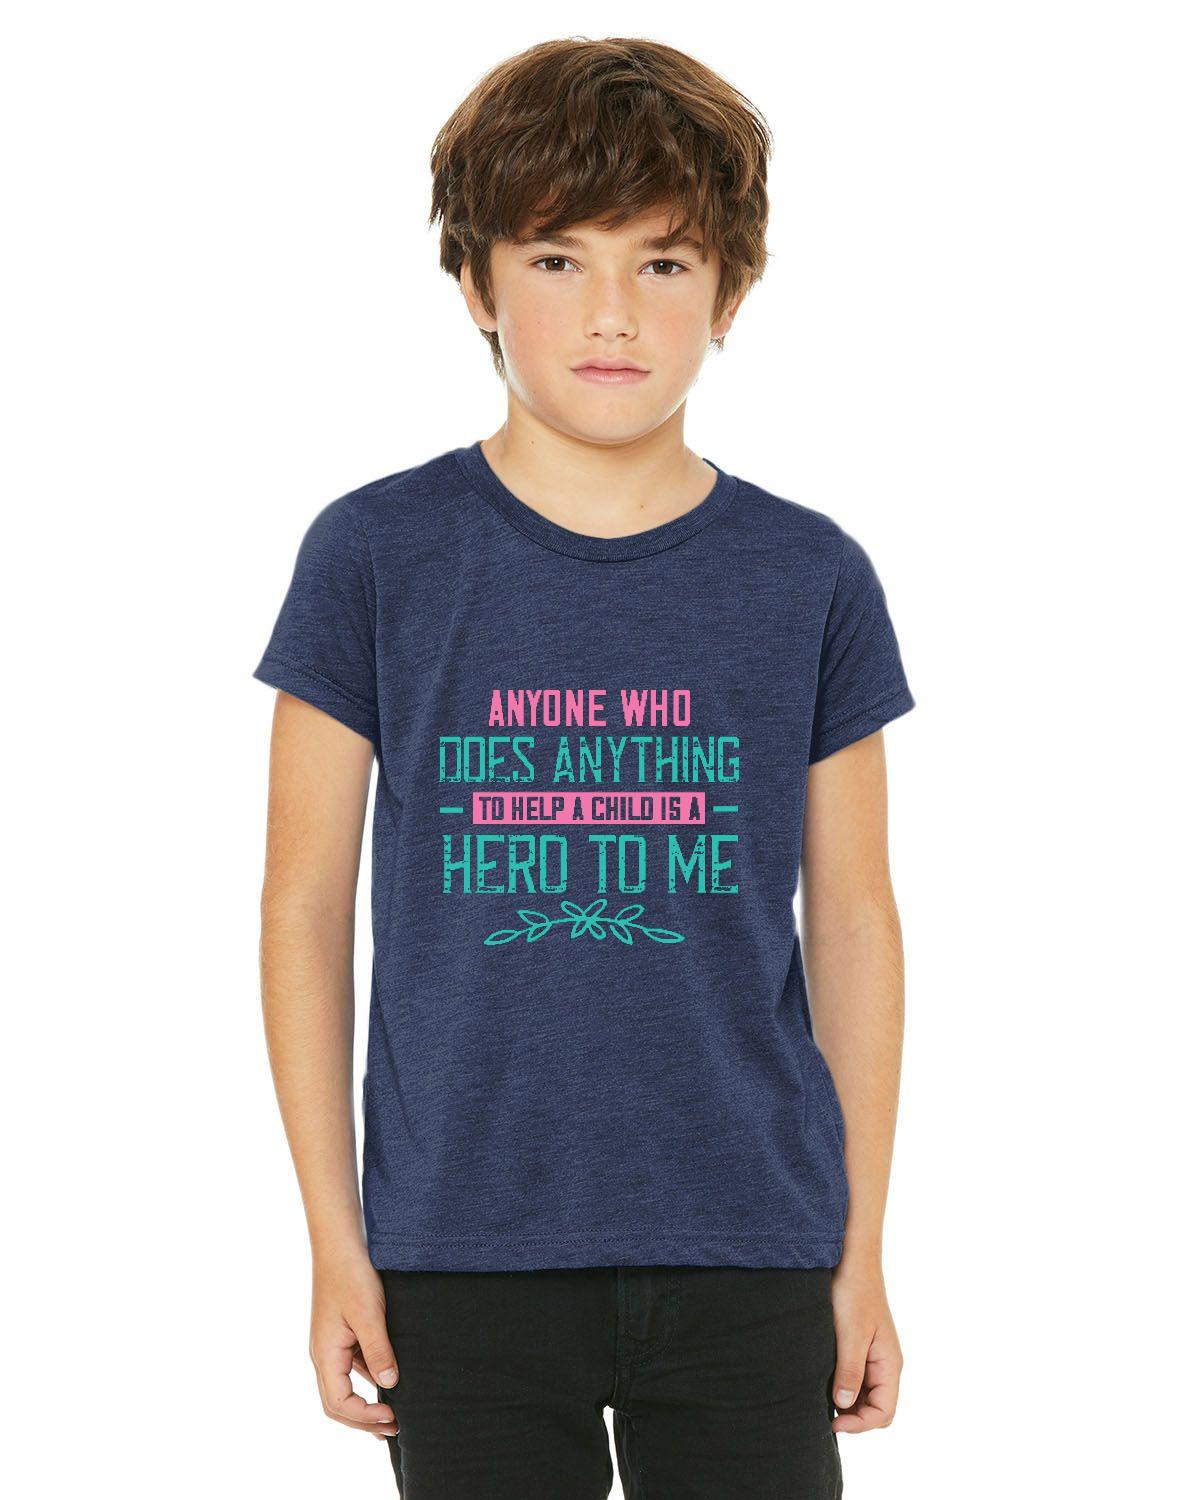 HERO TO ME Bella + Canvas Youth Triblend Short-Sleeve T-Shirt – Free Shipping